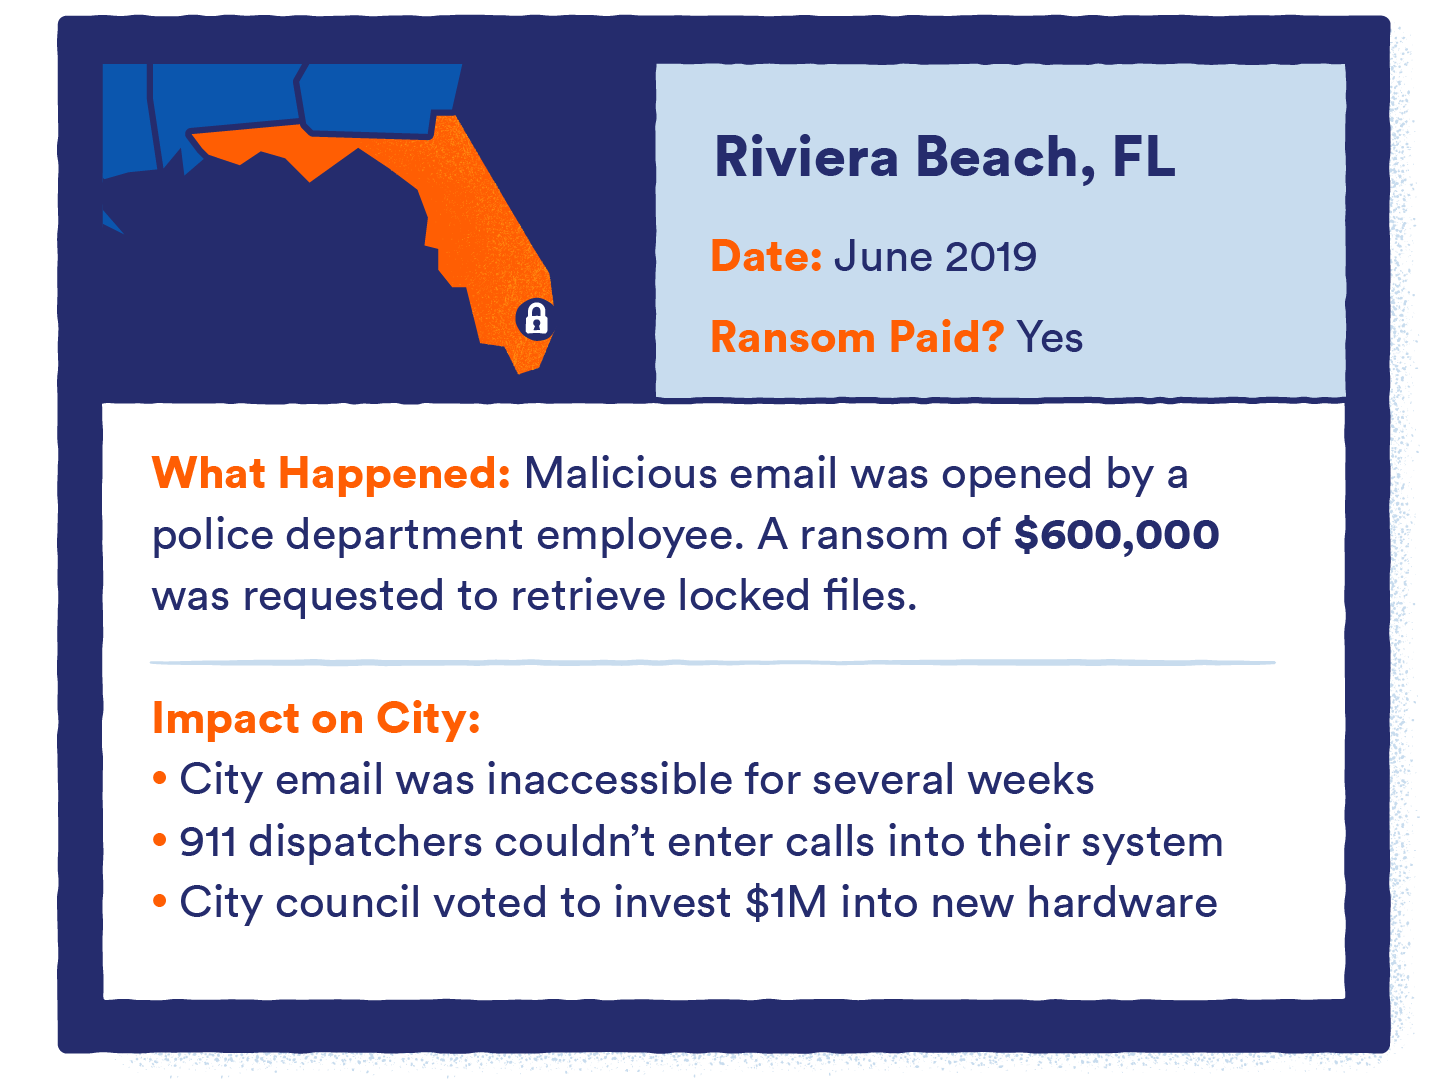 graphic that shows ransomware in riviera beach